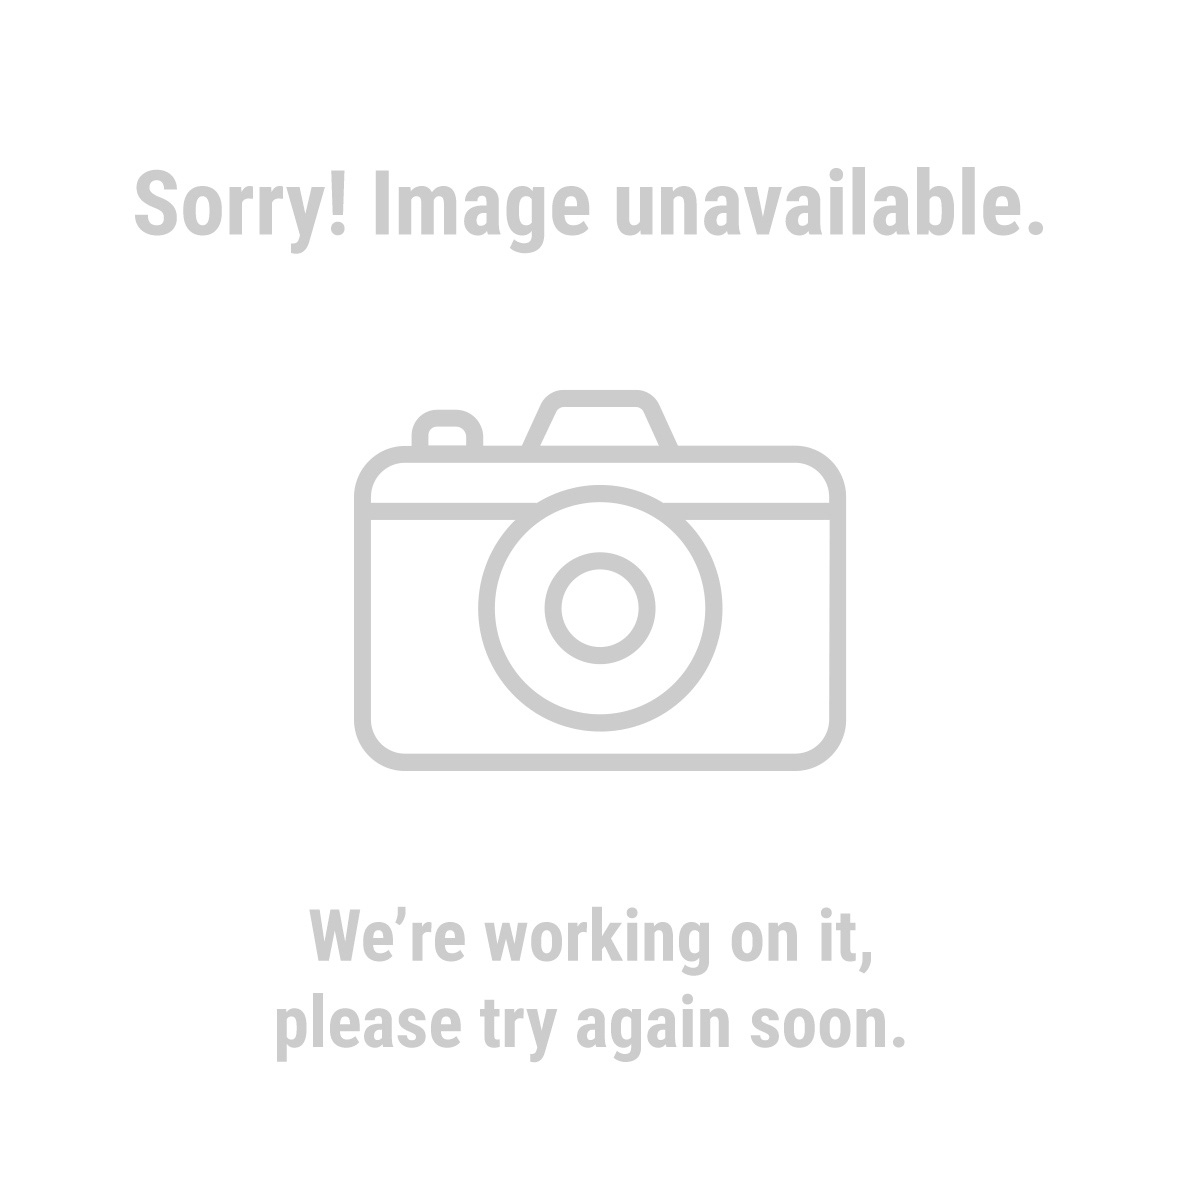 Central Hydraulics 94681 7 Piece Auto Body/Frame Repair Kit